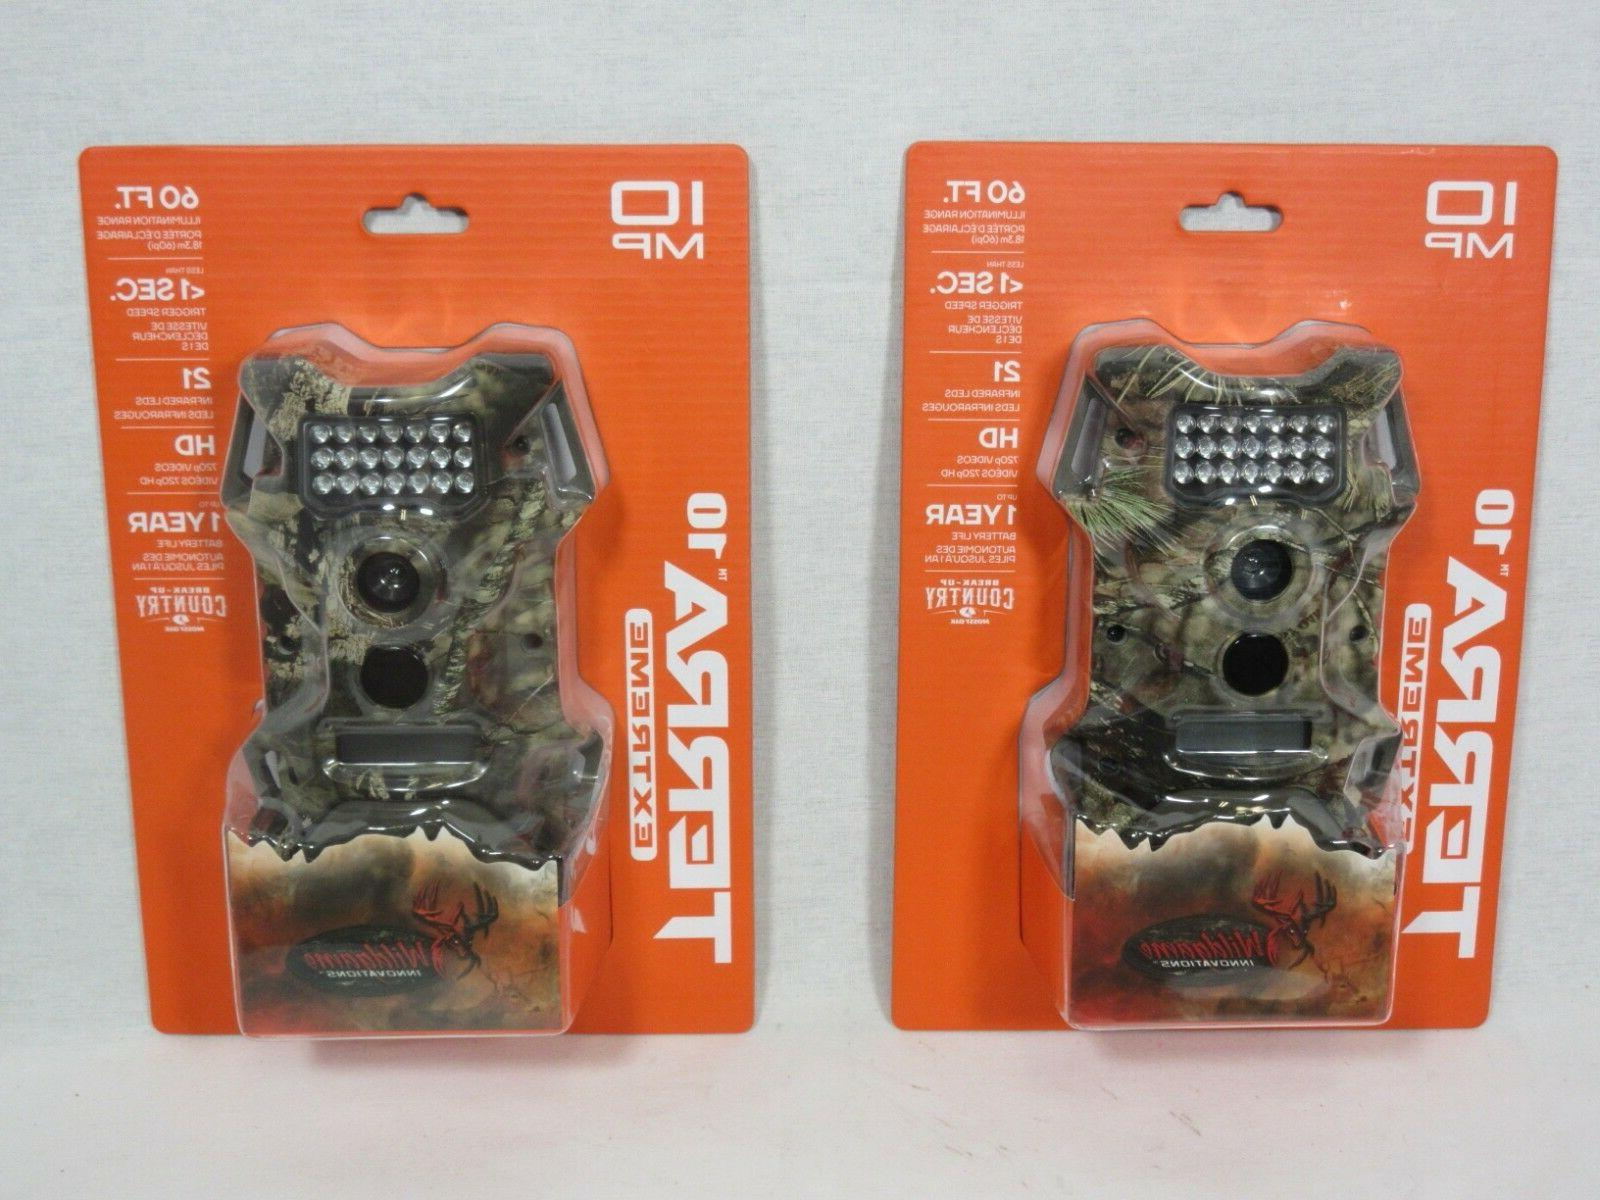 2 pack of terra 10 extreme trail